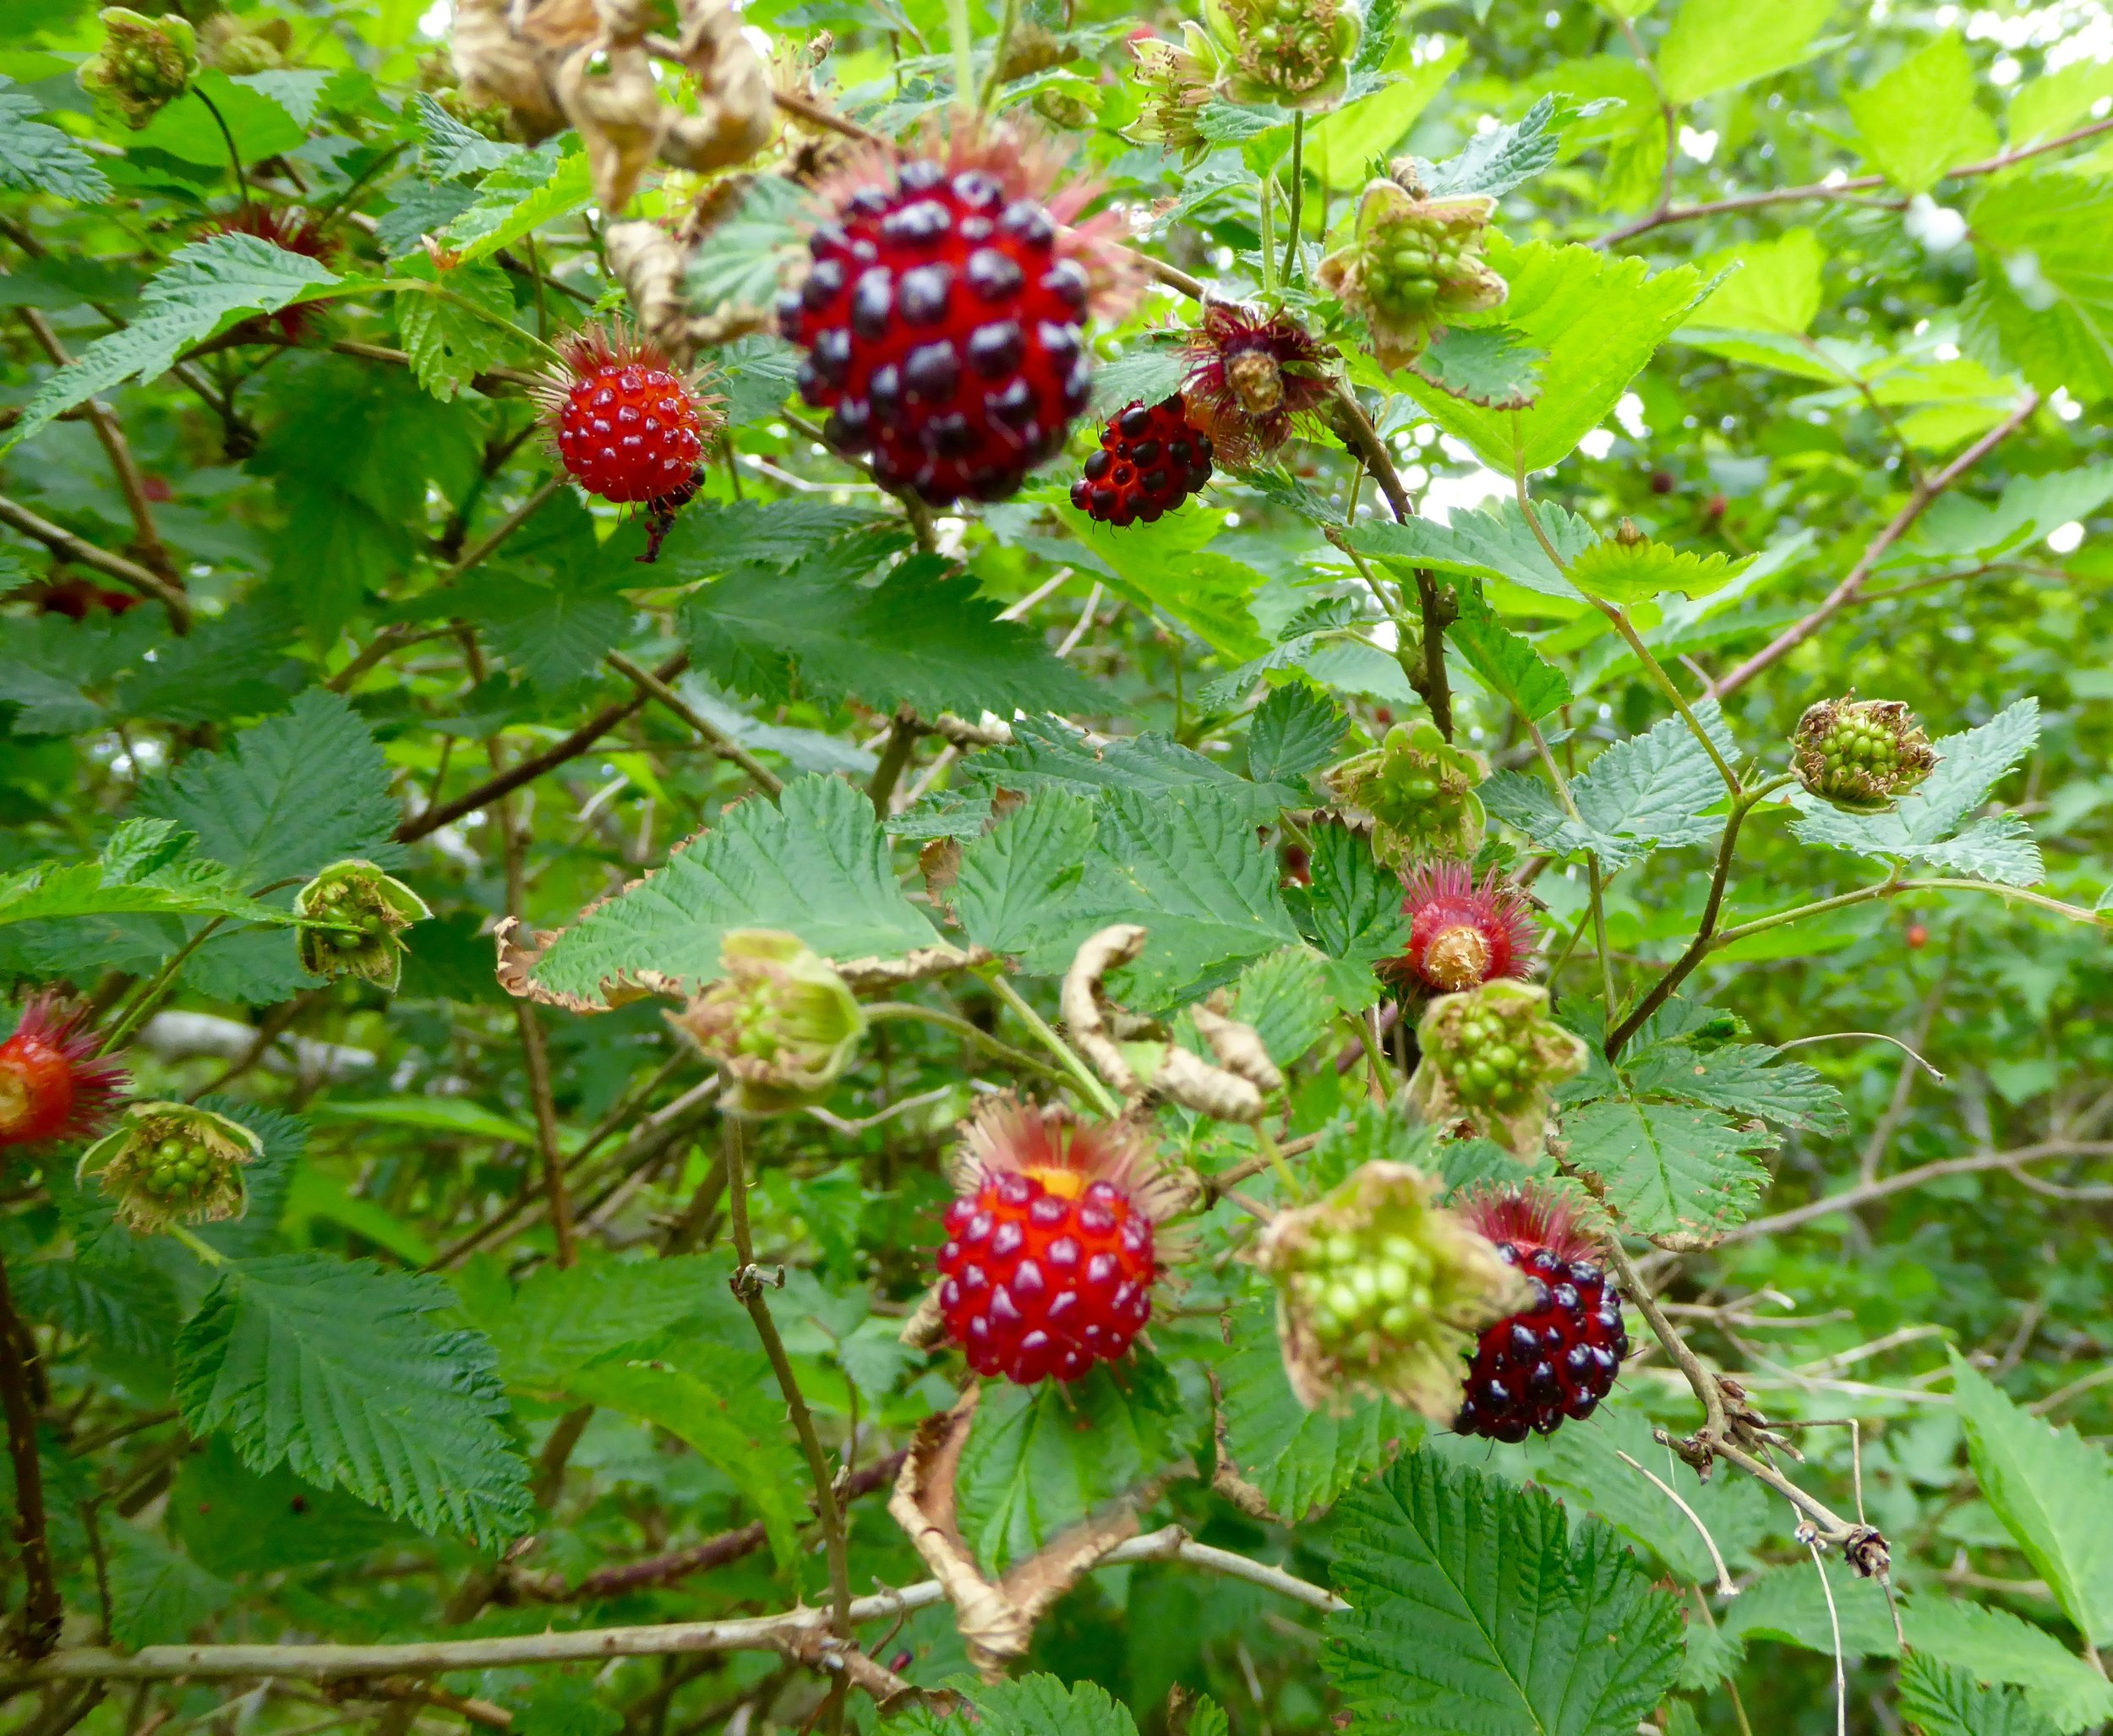 We are anticipating a good harvest of salmon berries this summer. This is encouraging!